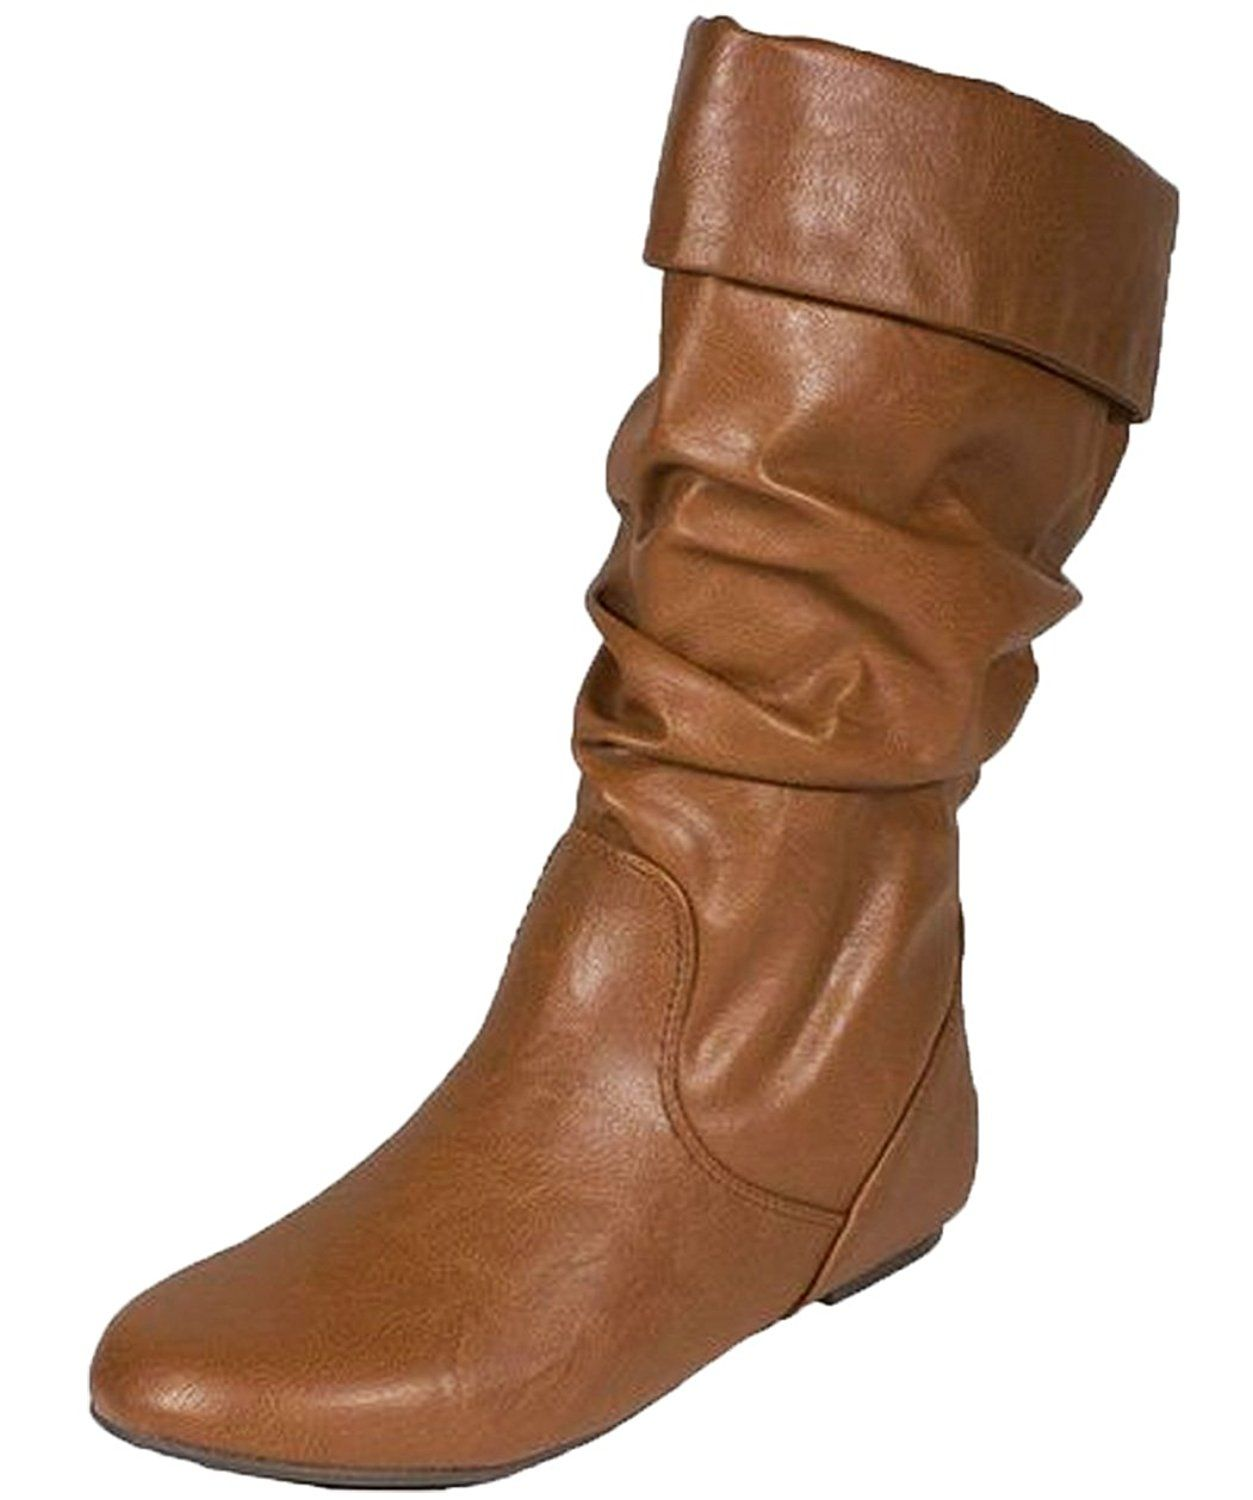 Women's Classic Basic Soft Faux Leather Slouchy Flat Knee High Boots COGNAC  (7.5) >